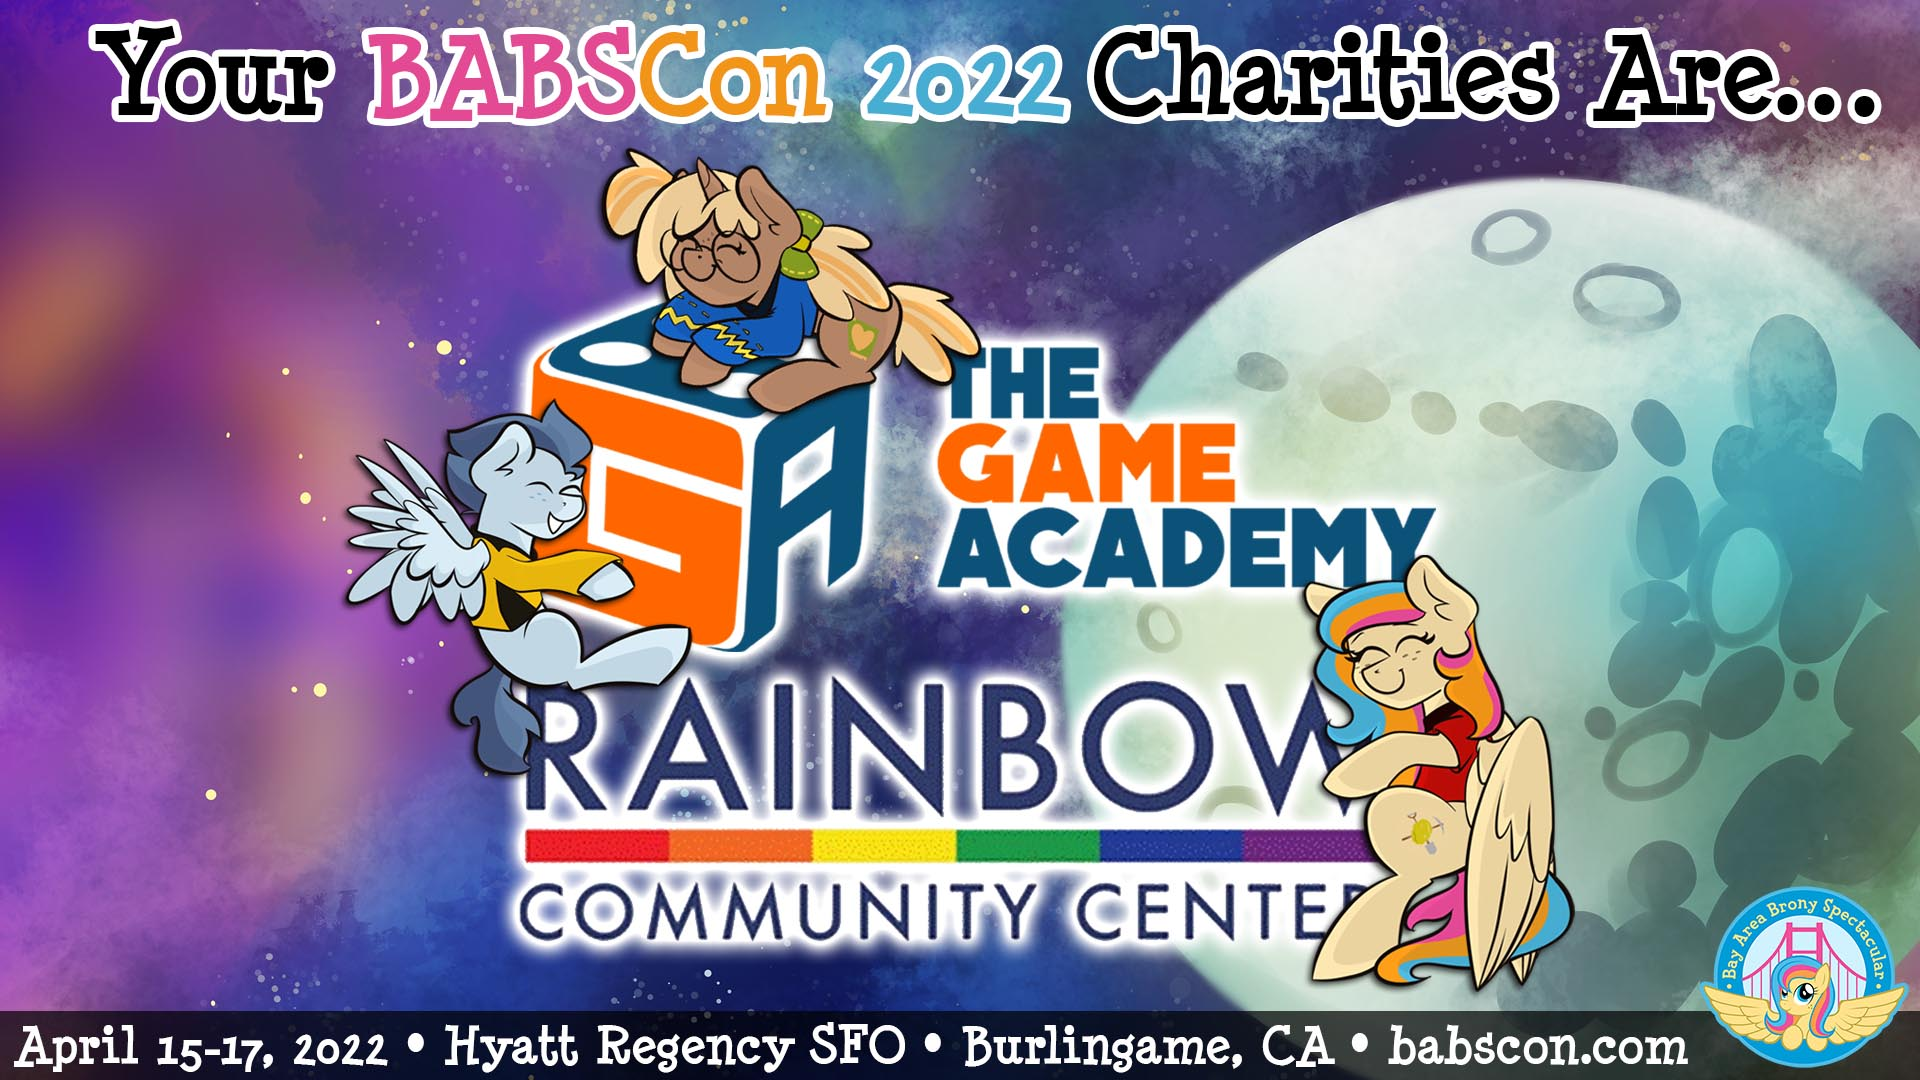 Our 2020 Charities: The Game Academy and The Rainbow Center of Contra Costa County